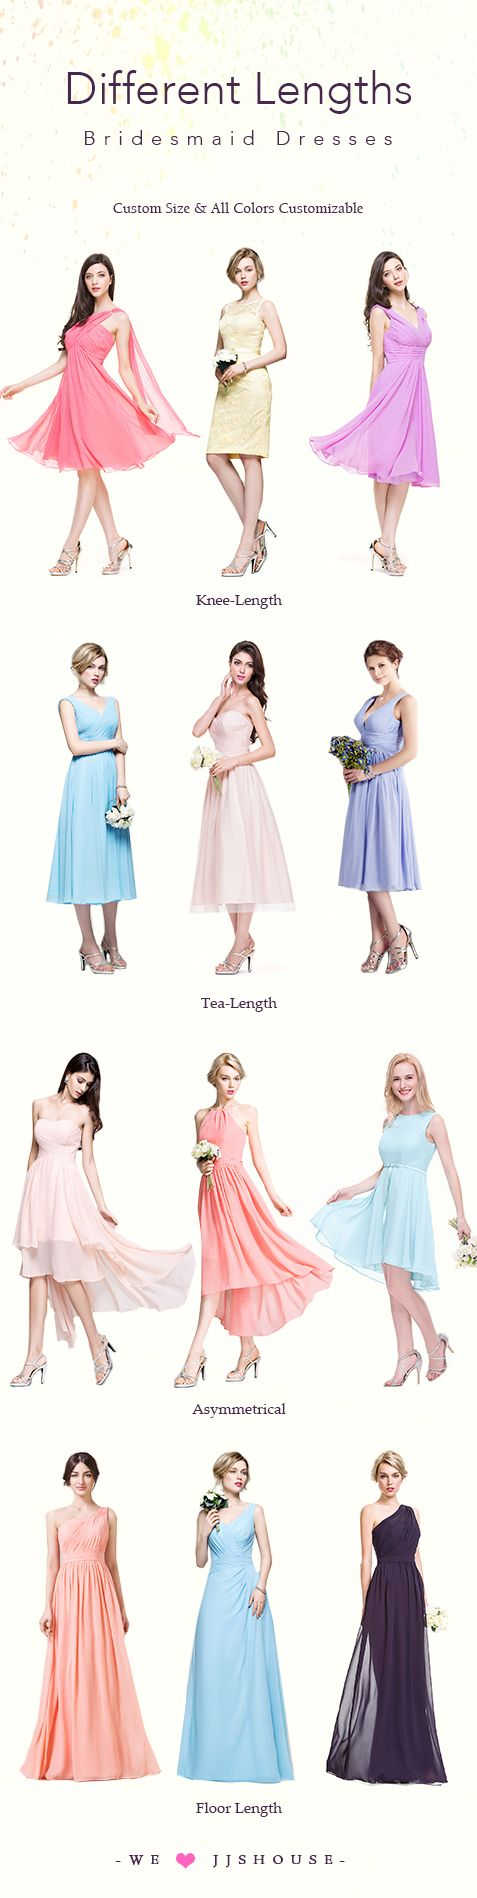 The 32 best images about cocomelody promotions on pinterest different lengths bridesmaid dresses custom size all color customizable bridesmaiddresses ombrellifo Images